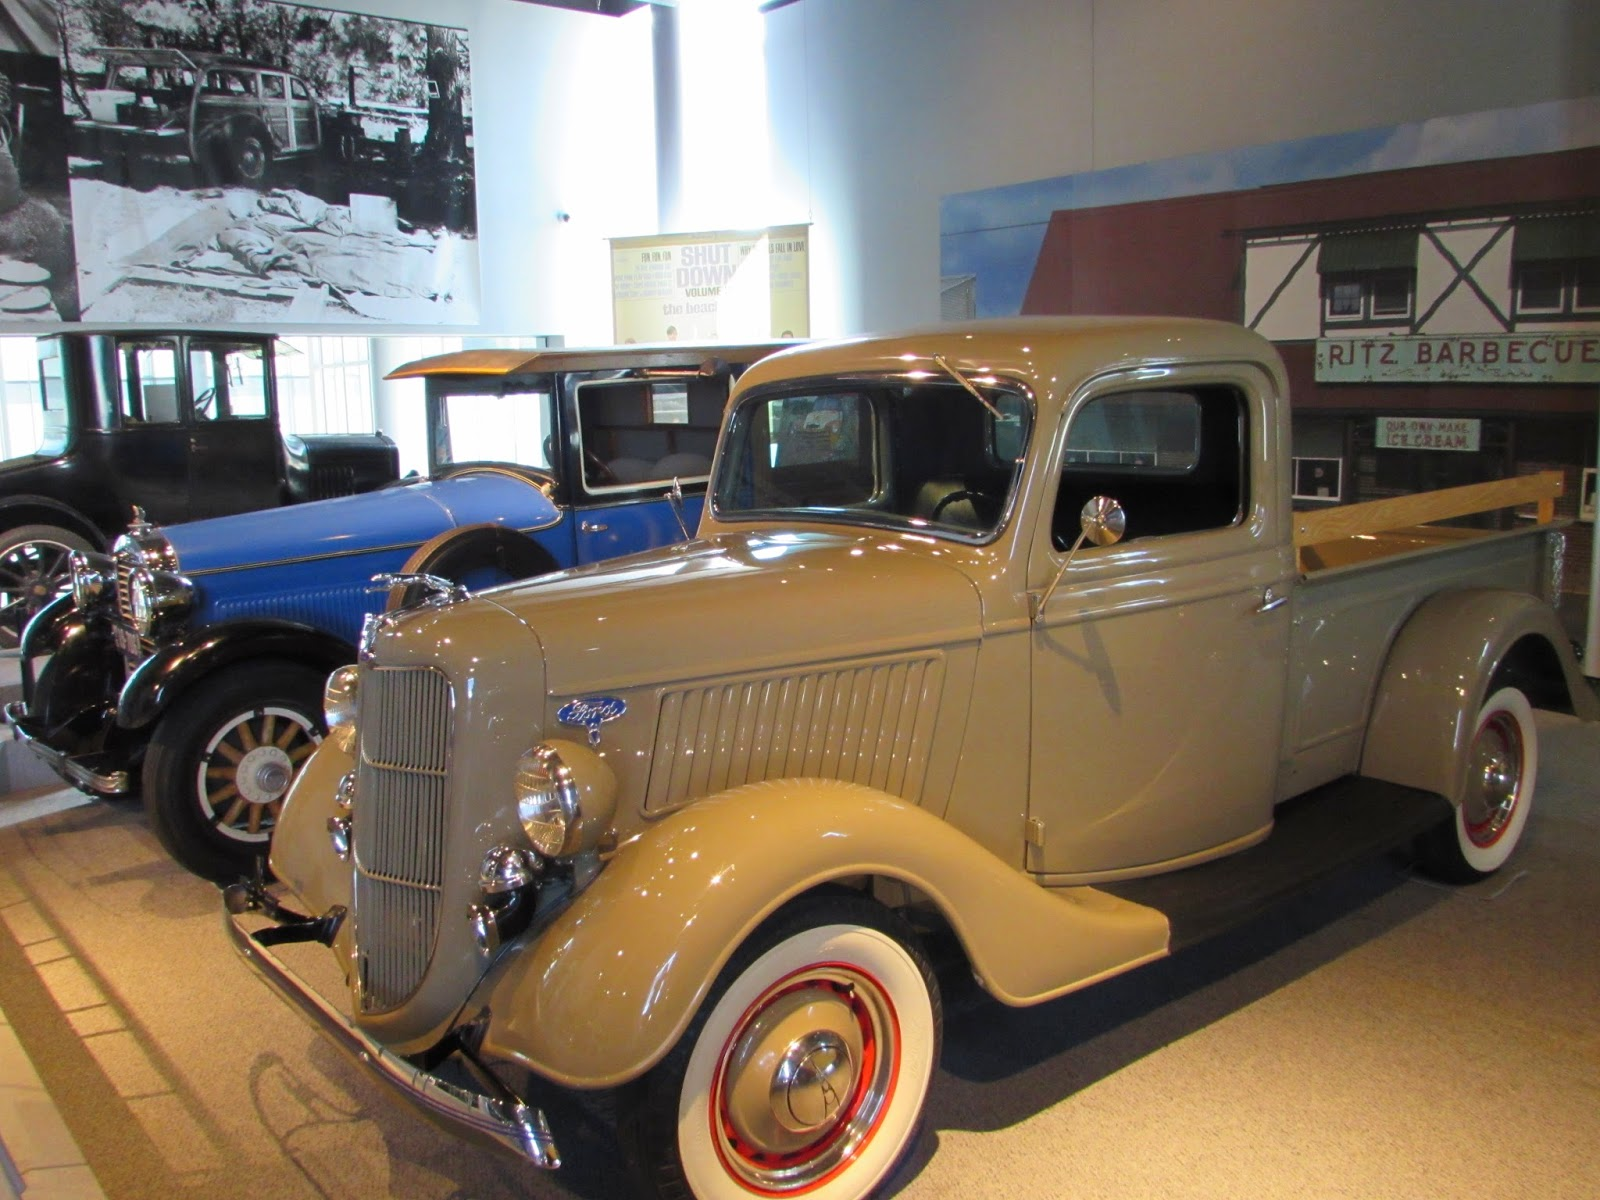 America On Wheels Museum: Allentown, PA | Interesting Pennsylvania ...